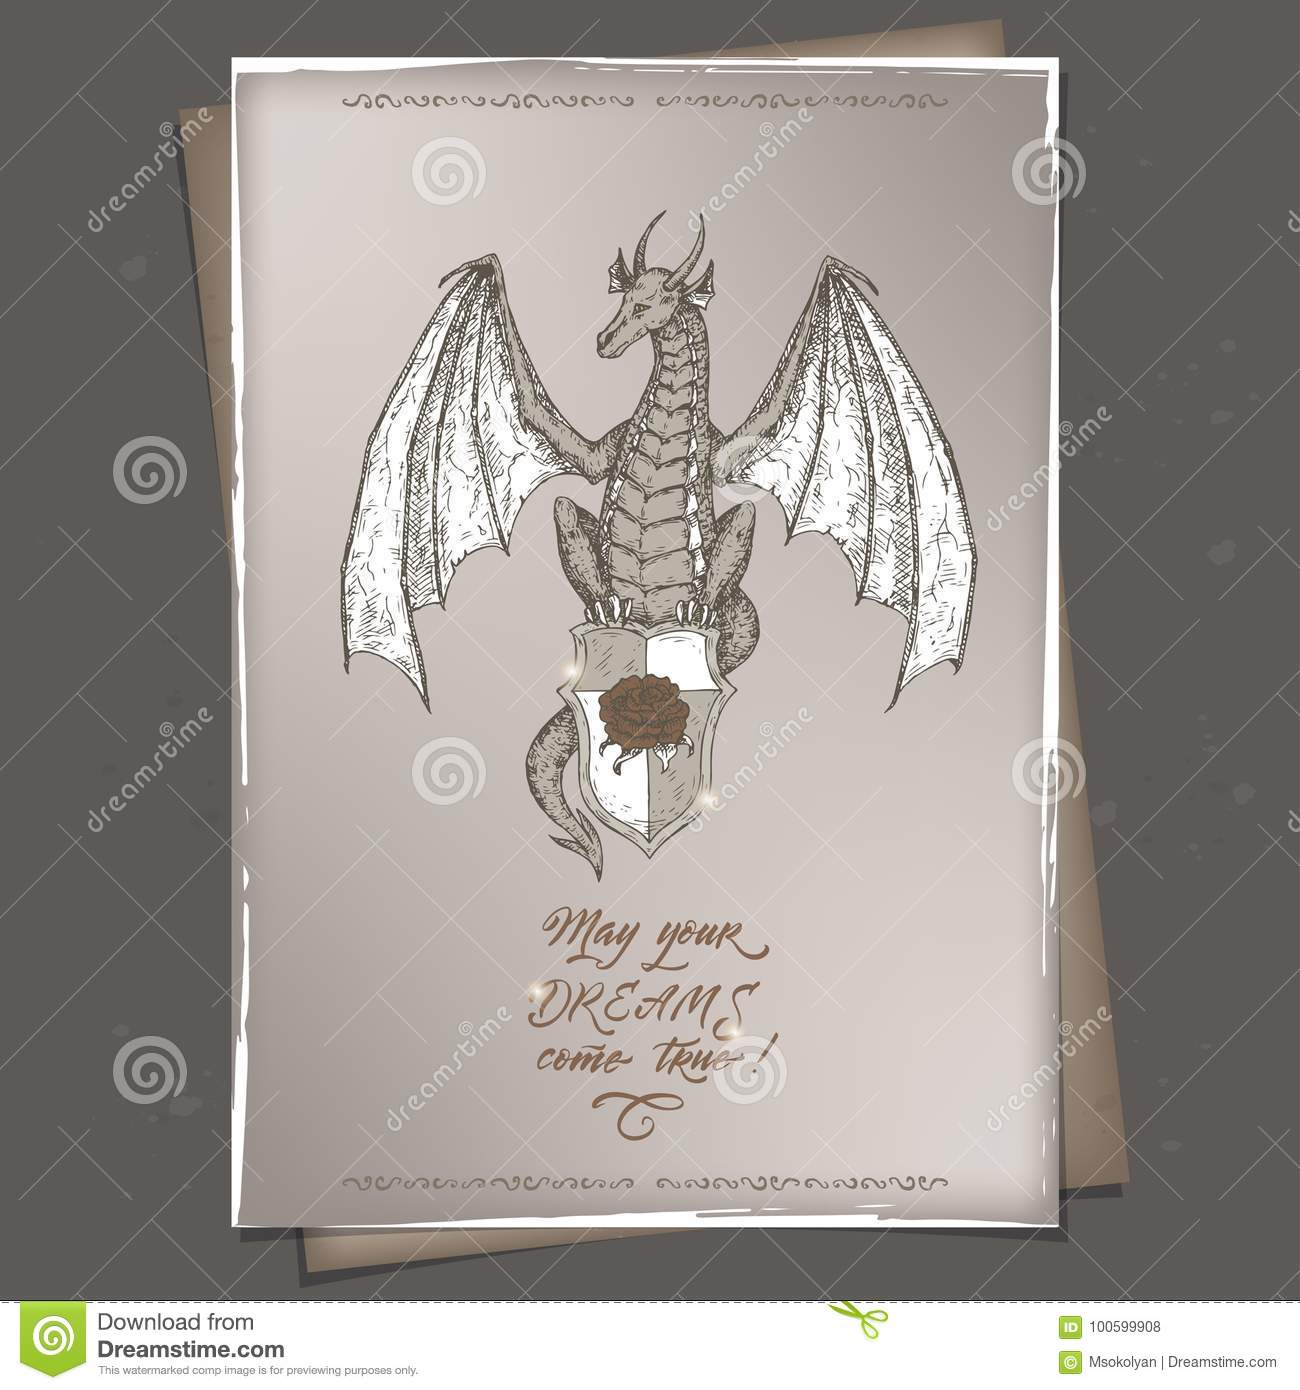 Romantic Vintage A4 Format Birthday Card Template With Calligraphy And Dragon Sketch